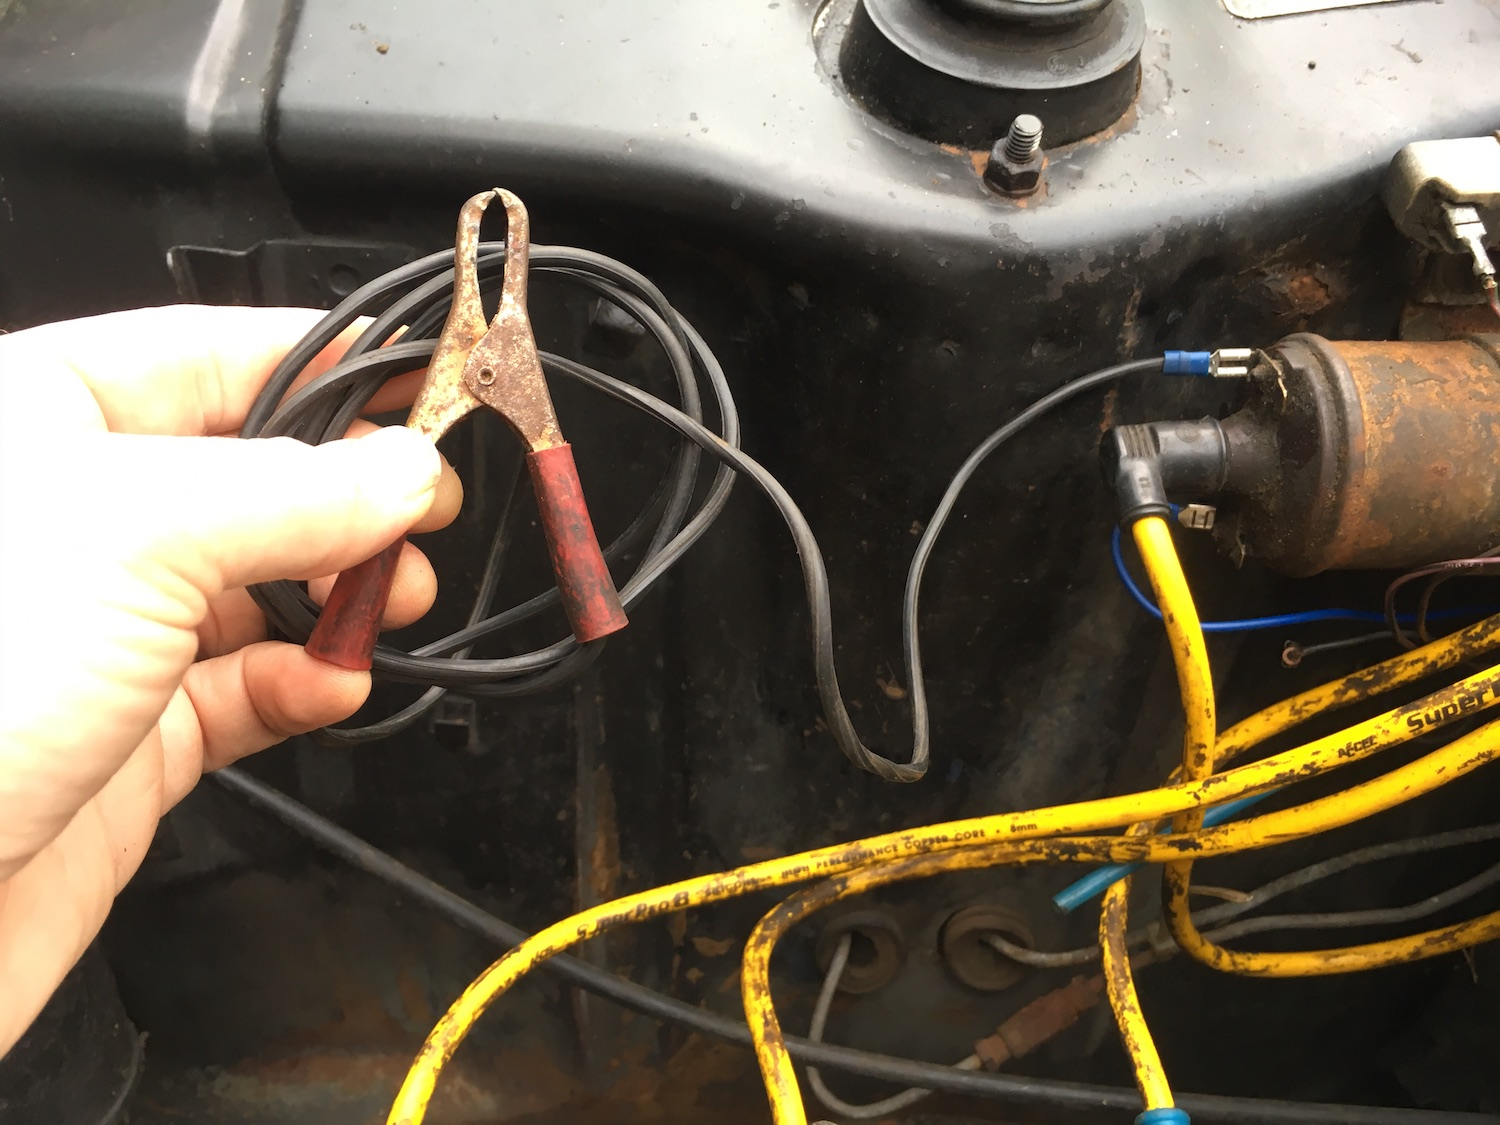 Cable alligator clip connected coil battery positive